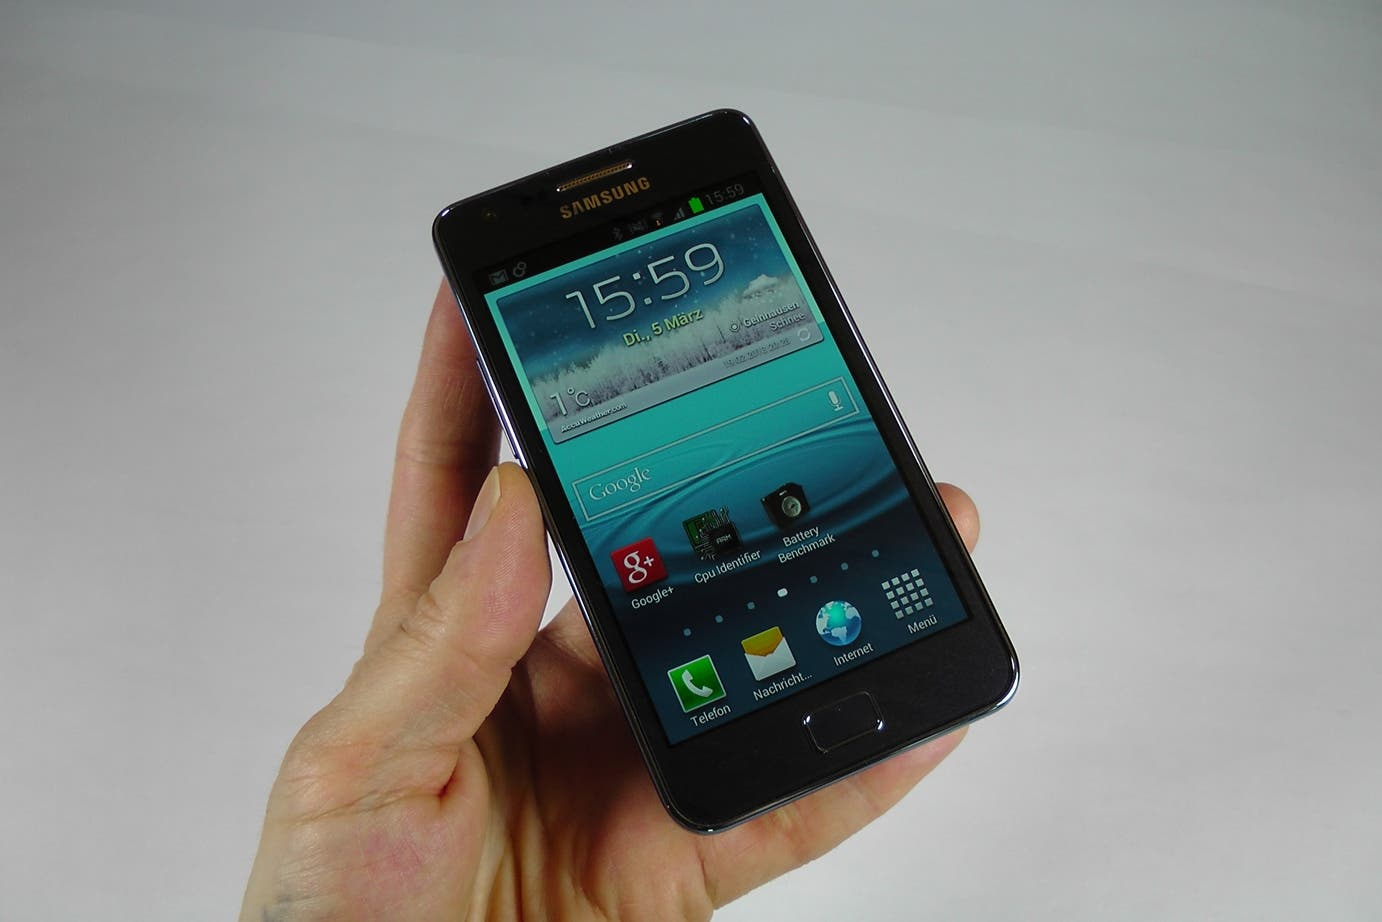 Samsung Galaxy S2 Plus Unboxing 24